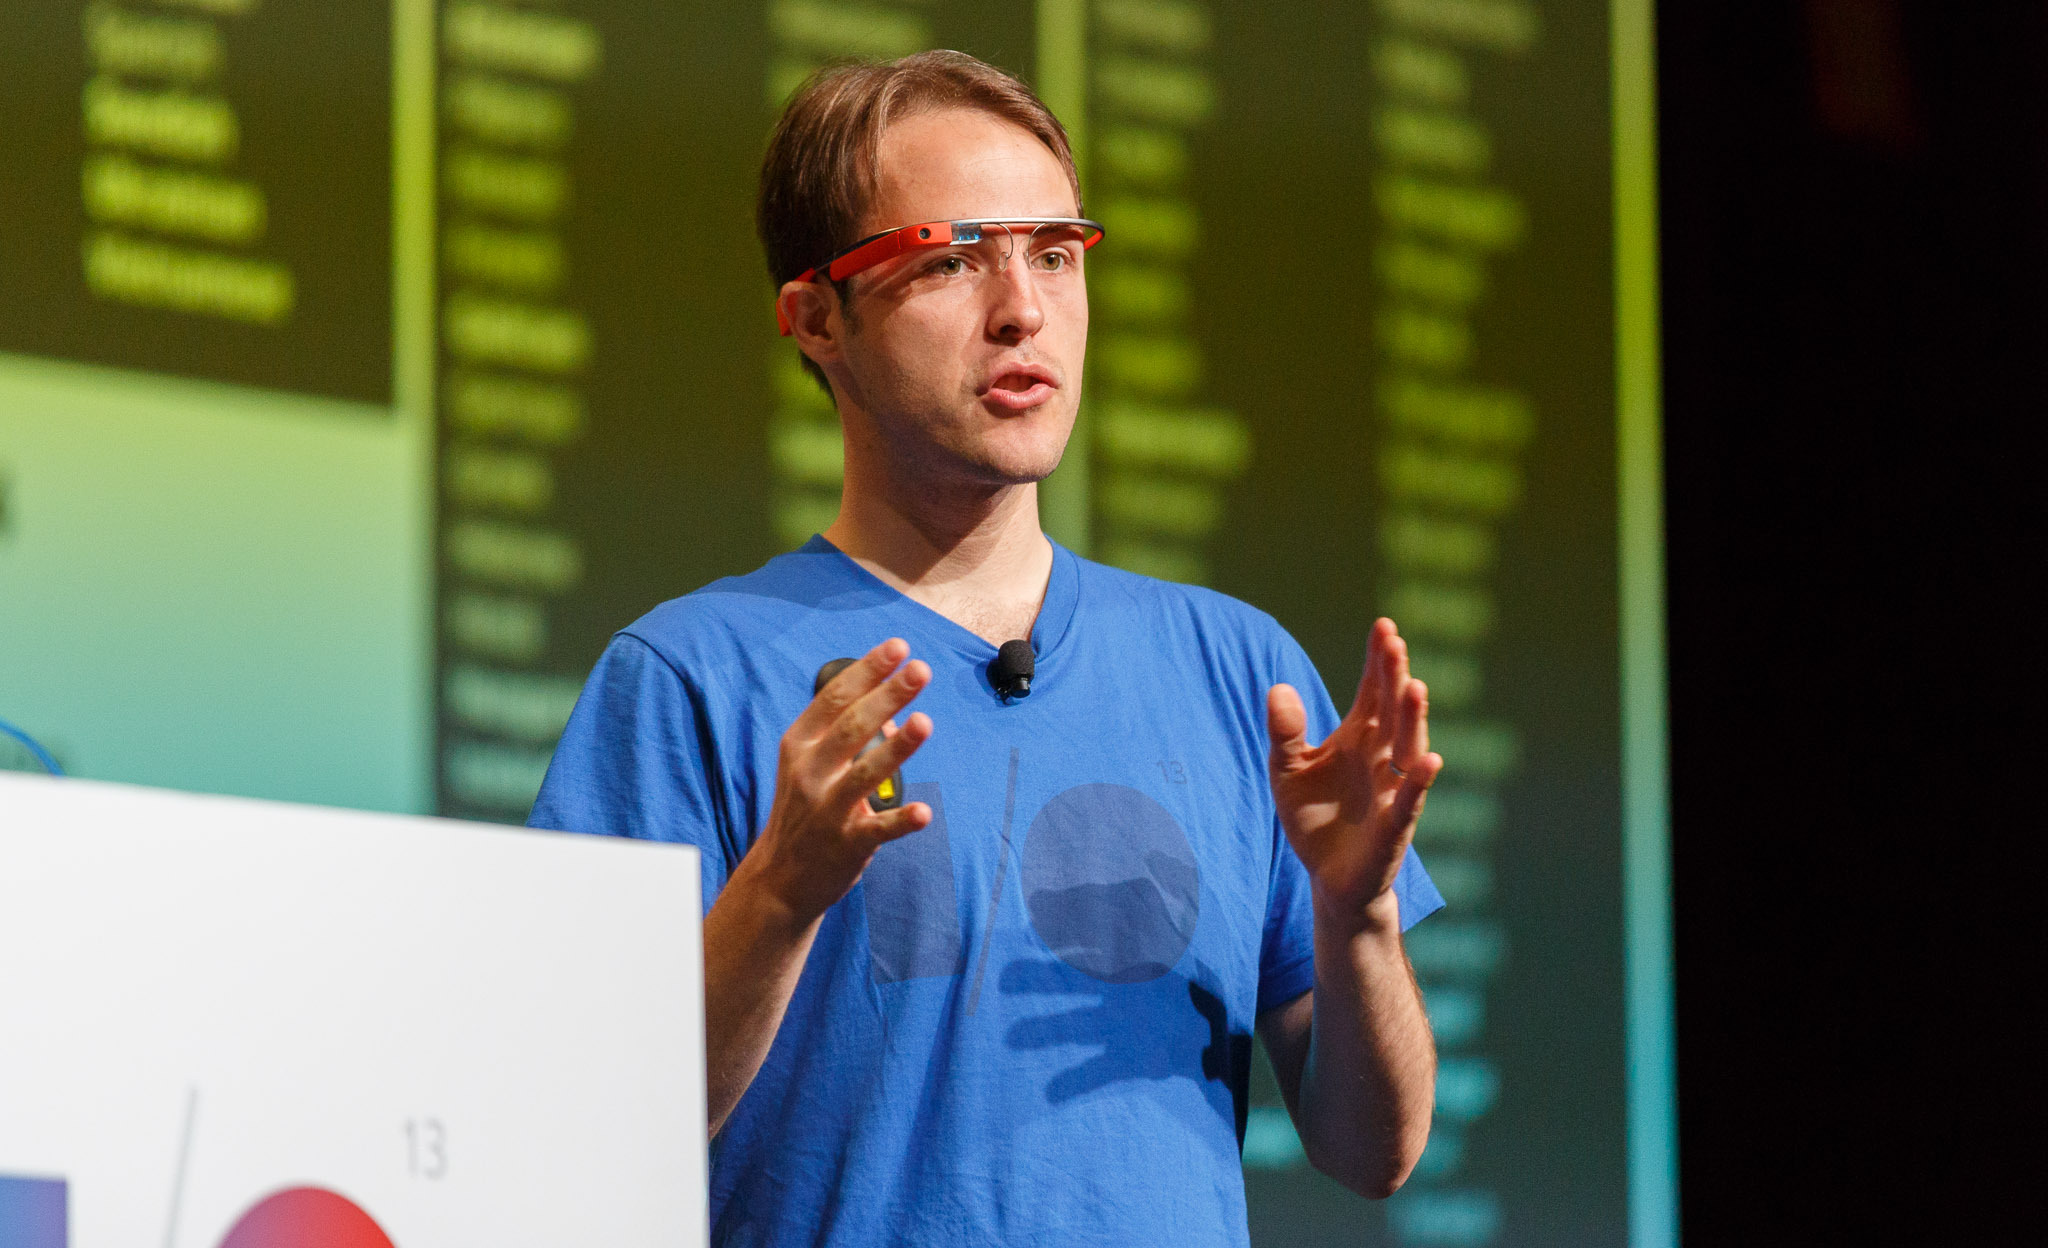 Josh Estelle, a Google Translate engineering leader, speaks at Google I/O 2013.